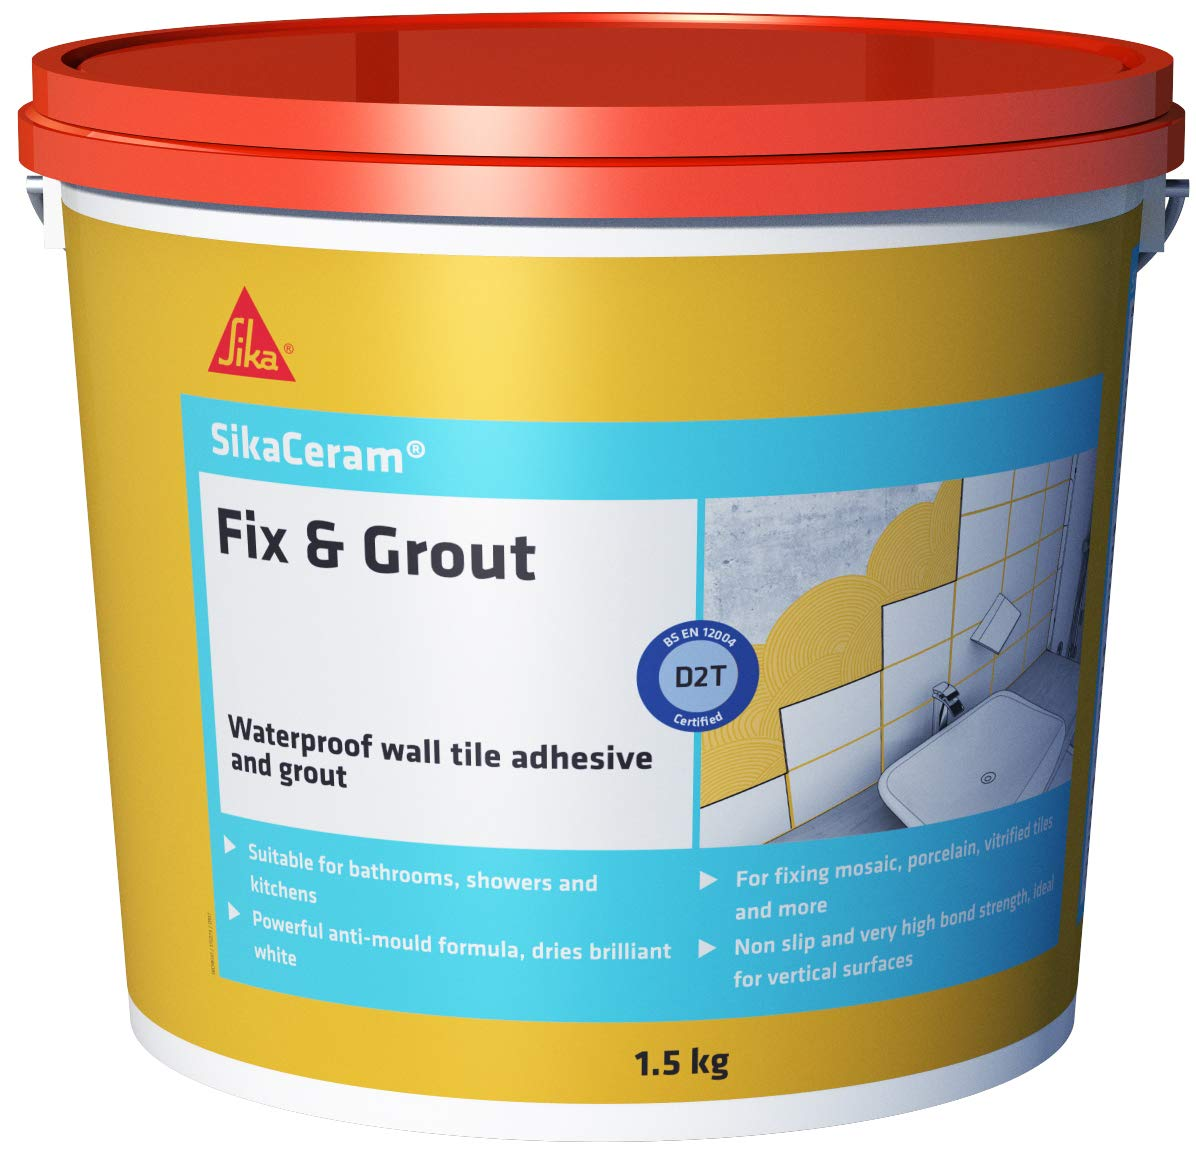 SikaCeram Fix & Grout - Waterproof wall tile adhesive grout - 750g - White Sika Everbuild SKCMFIX07